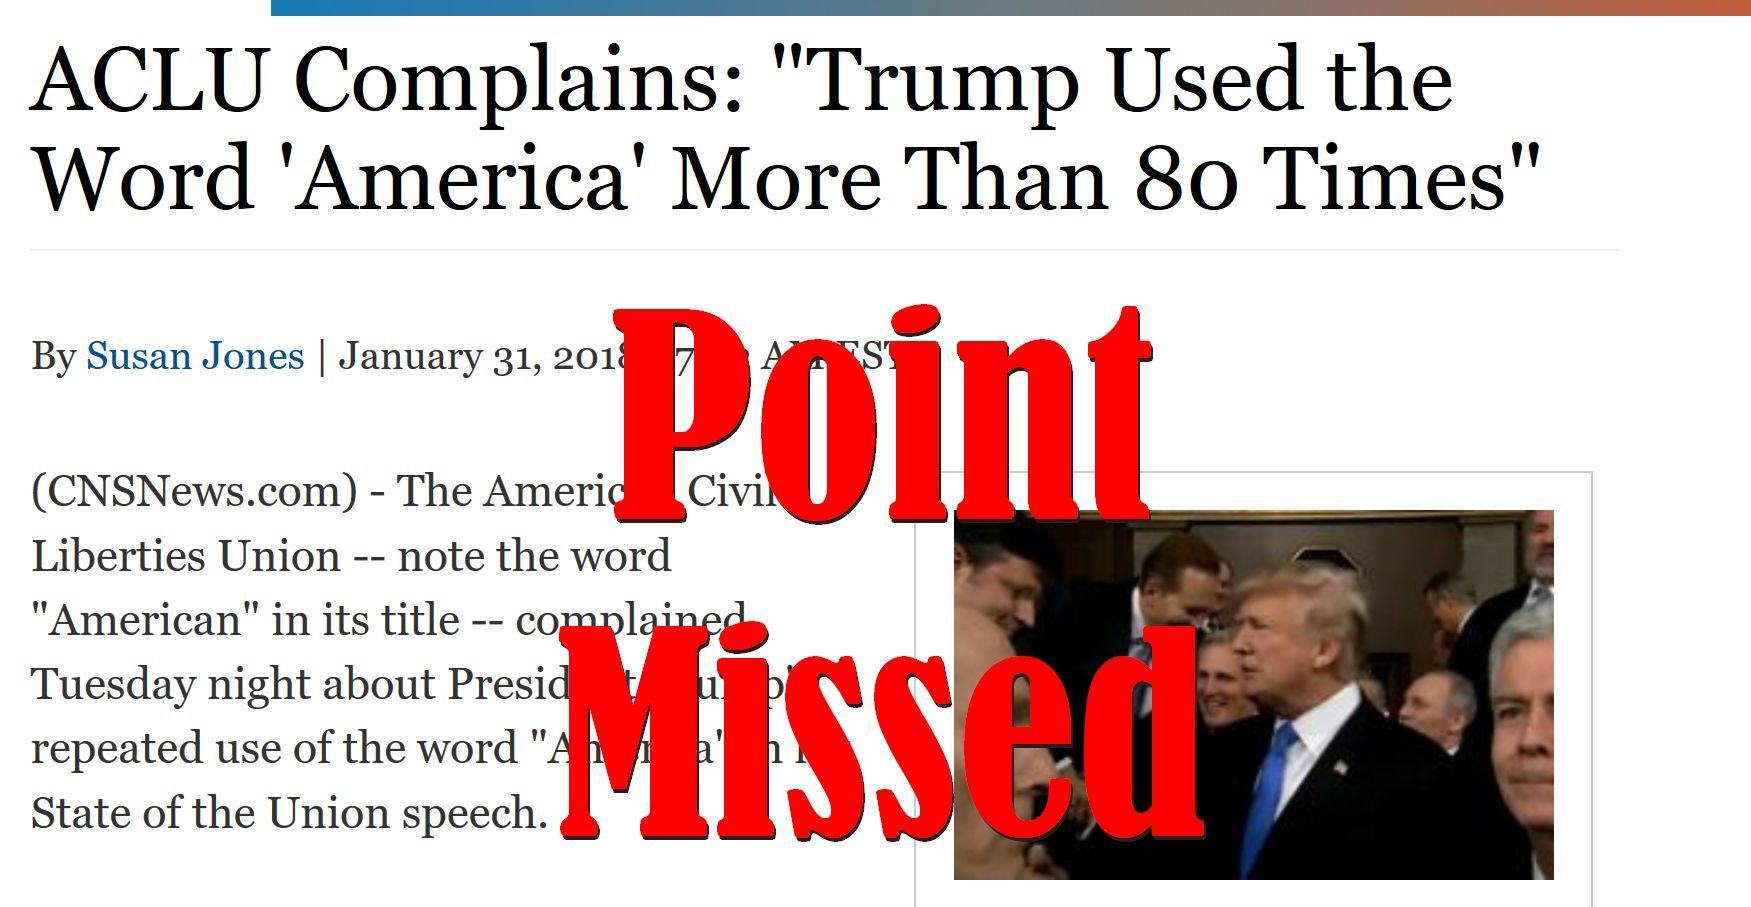 Fake News: ACLU Did NOT Complain Trump Used the Word 'America' More Than 80 Times